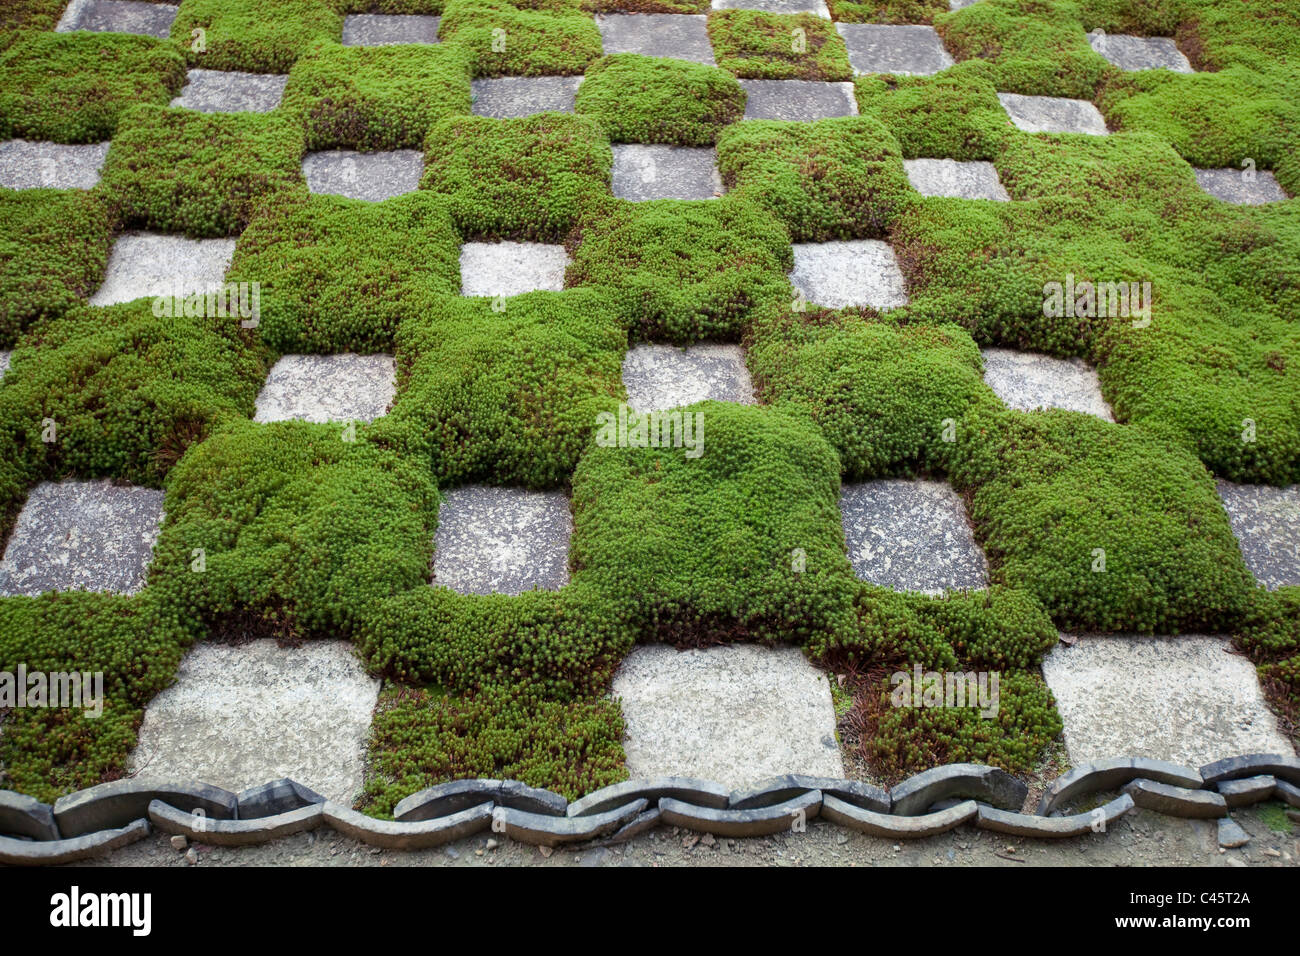 At Tofuku-ji temple, garden with stones and moss arranged in a chequerboard pattern, Kyoto, Japan. - Stock Image